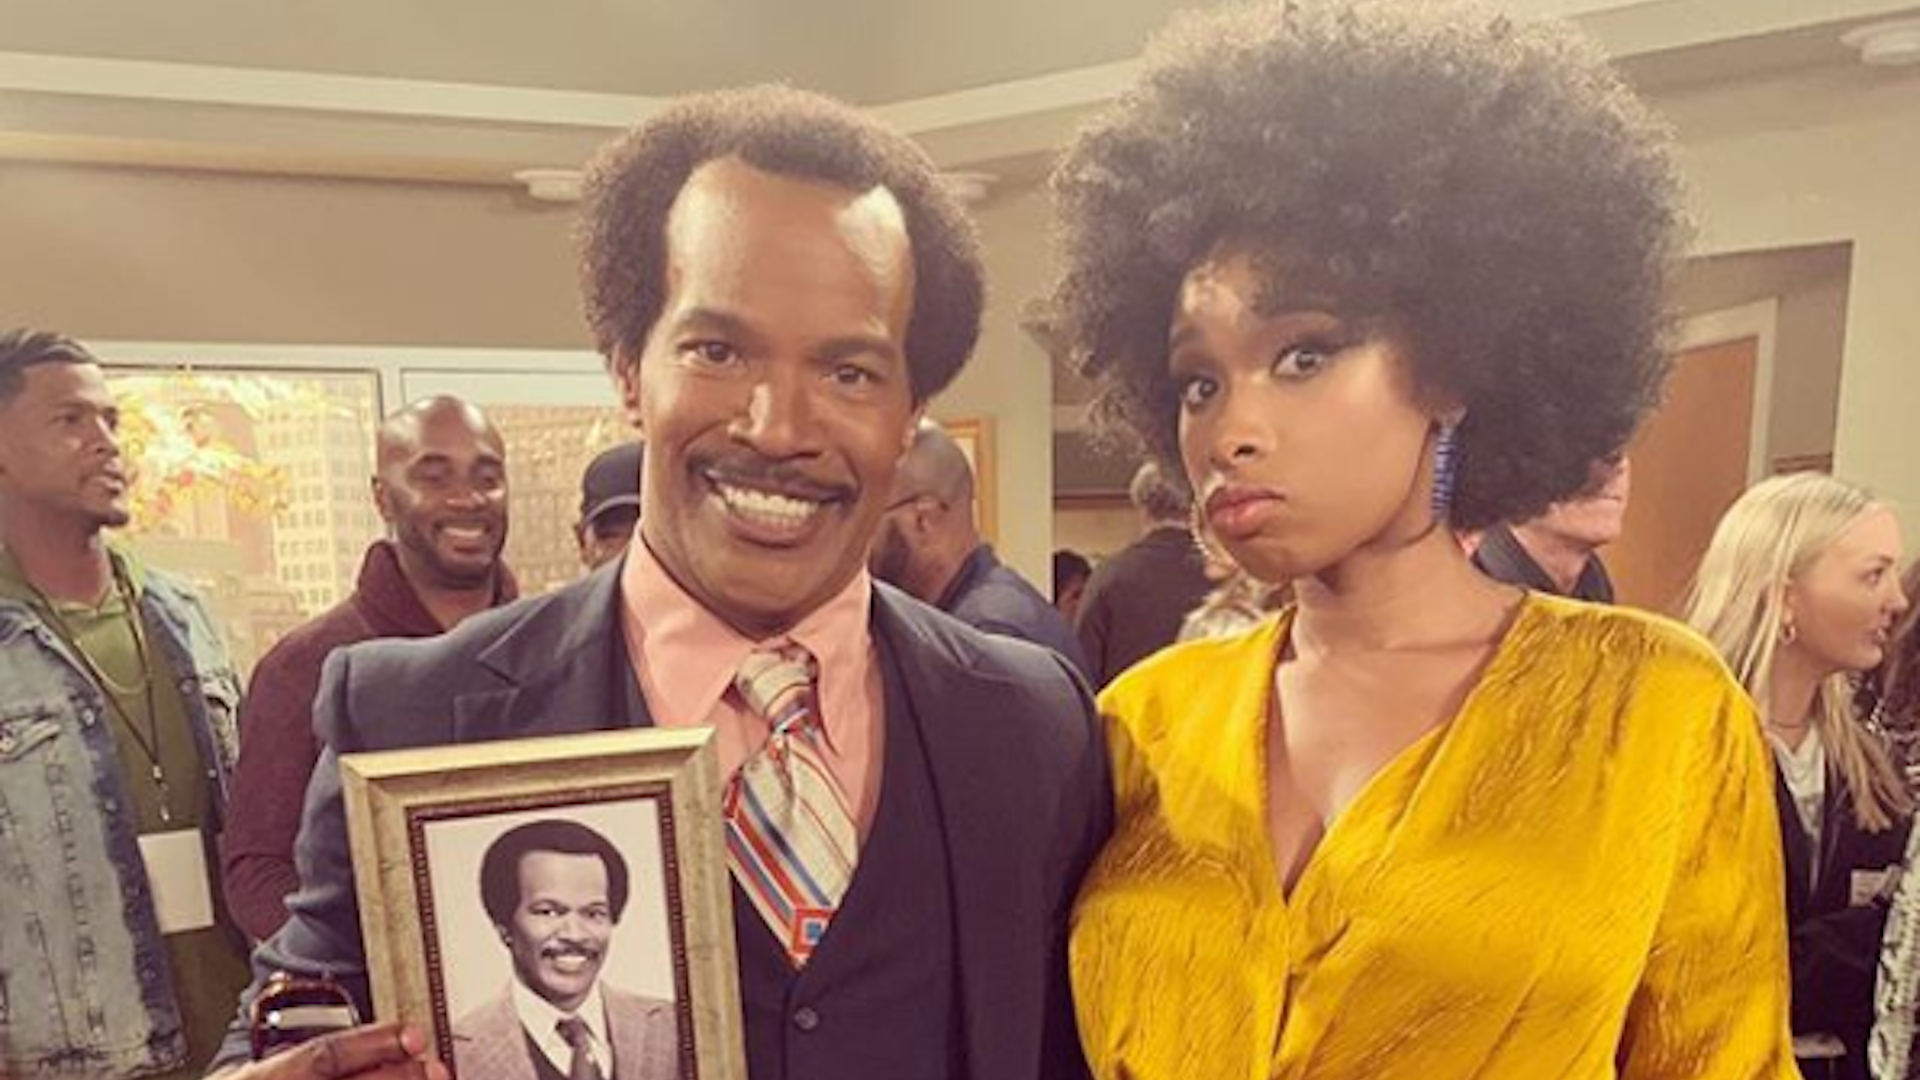 Behind-The-Scenes Of 'The Jeffersons' Live Revival